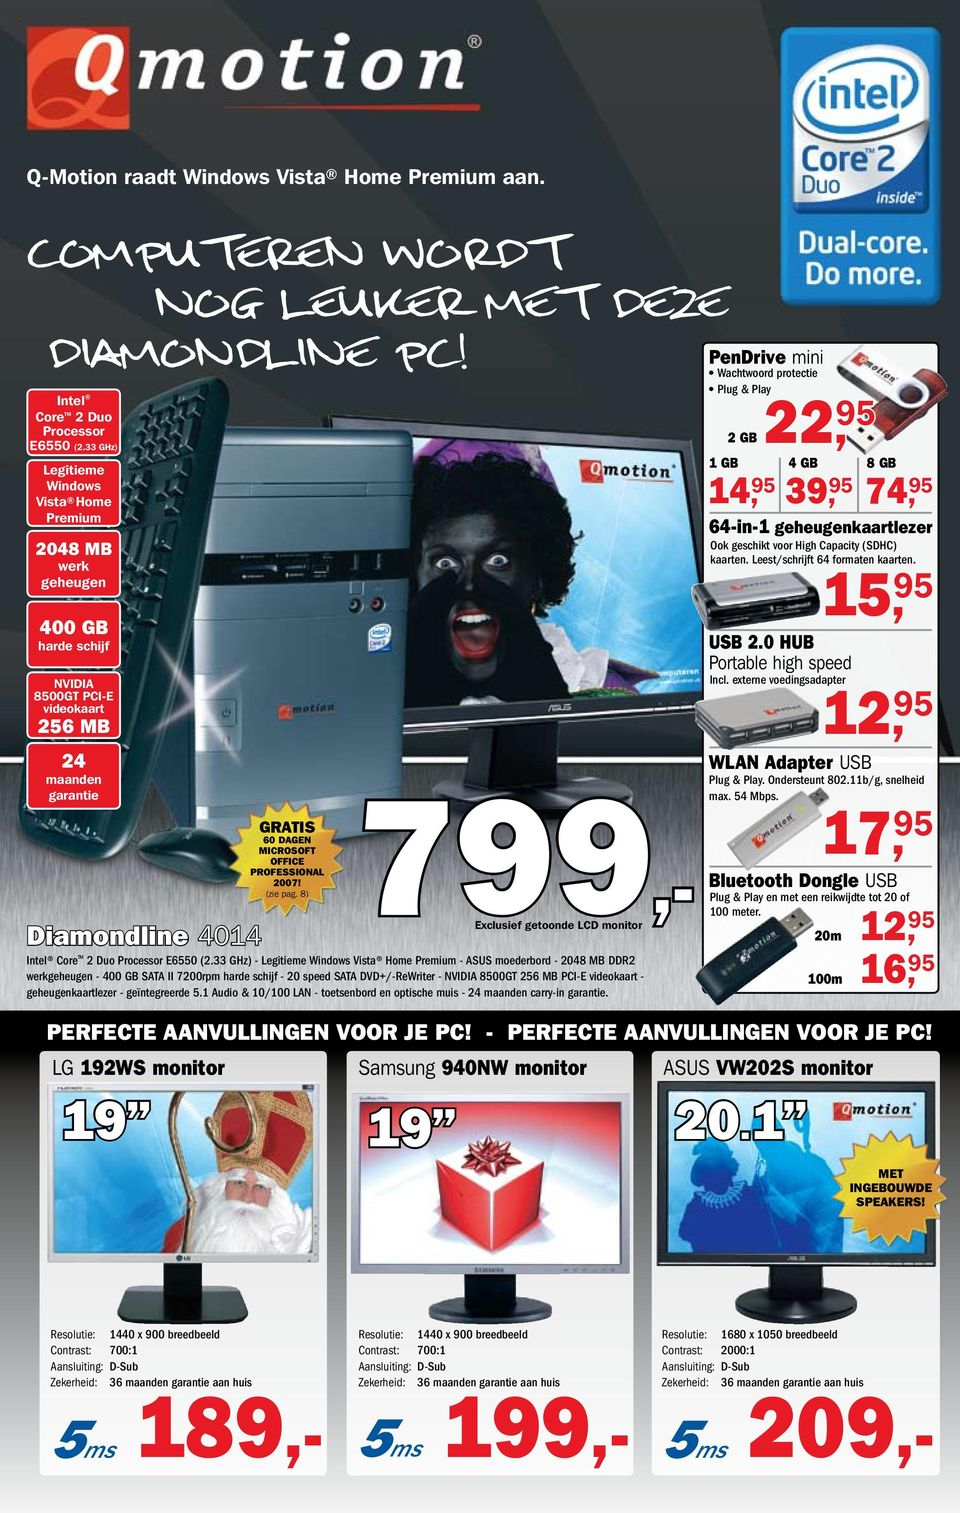 8) 799,- Exclusief getoonde LCD monitor Diamondline 4014 Intel Core TM 2 Duo Processor E6550 (2.